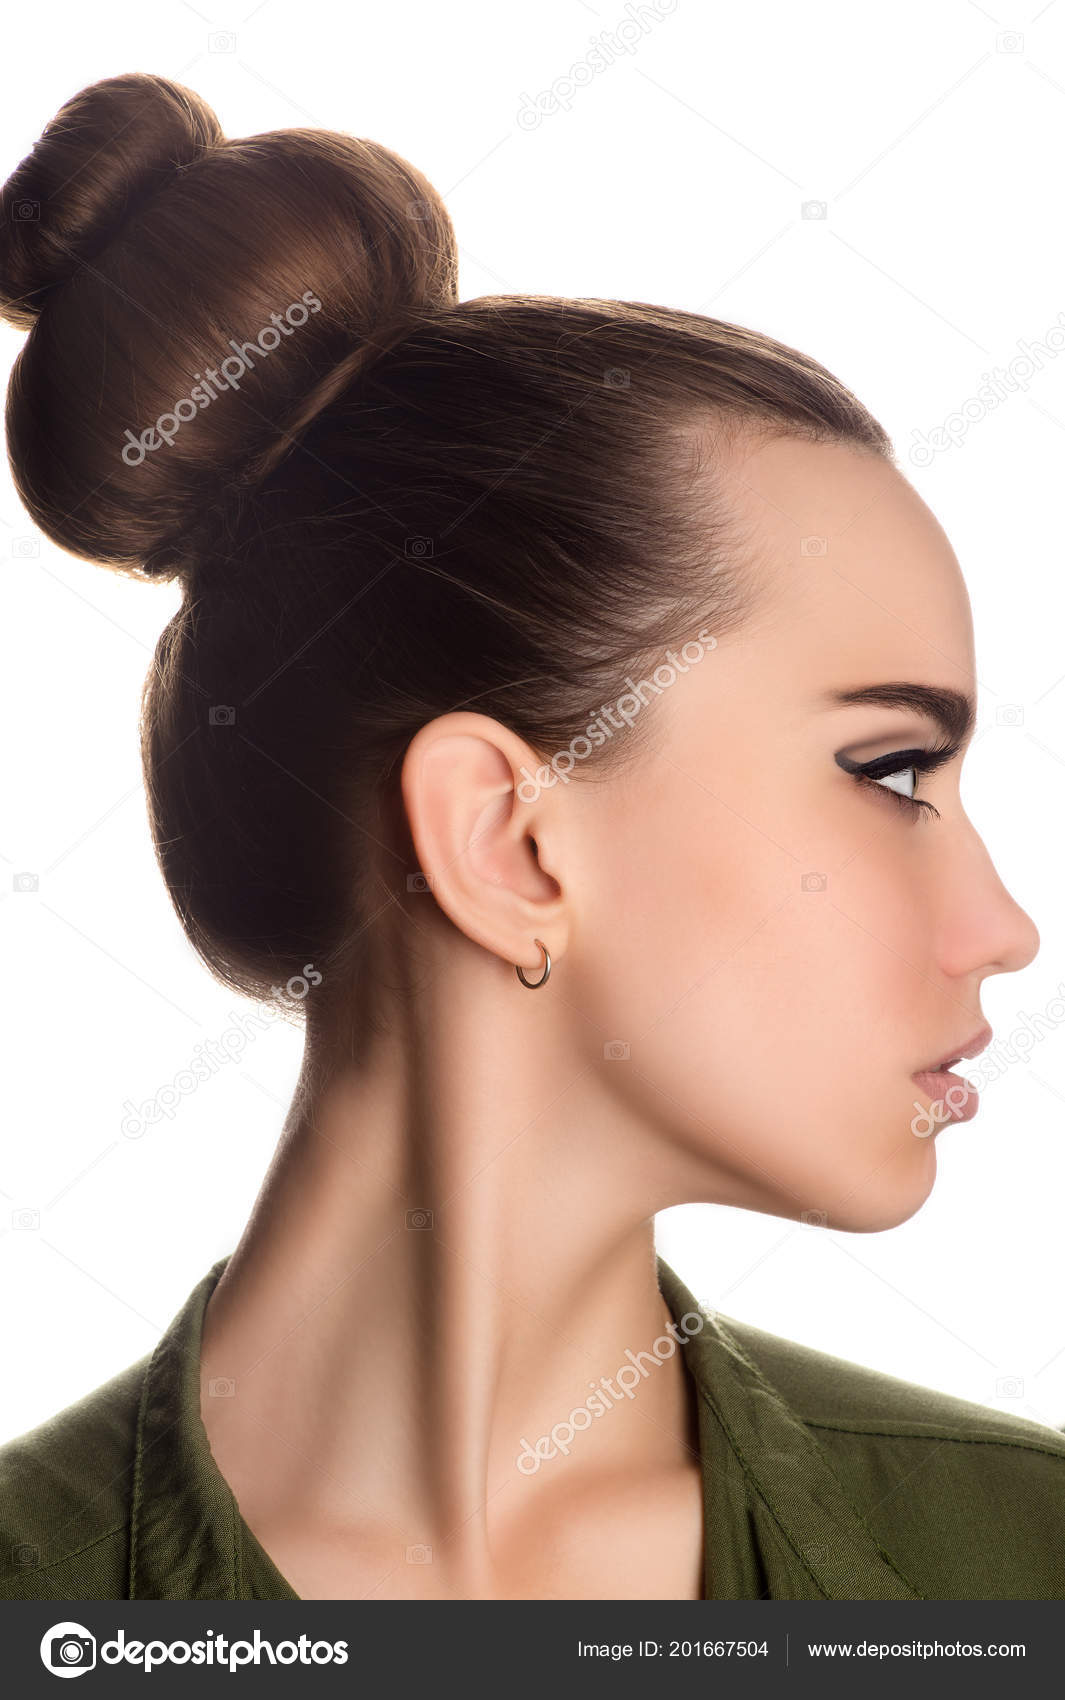 Beautiful Young Girl Gorgeous Hair Profile Face Closeup Stock Photo Image By C Dualshock 201667504